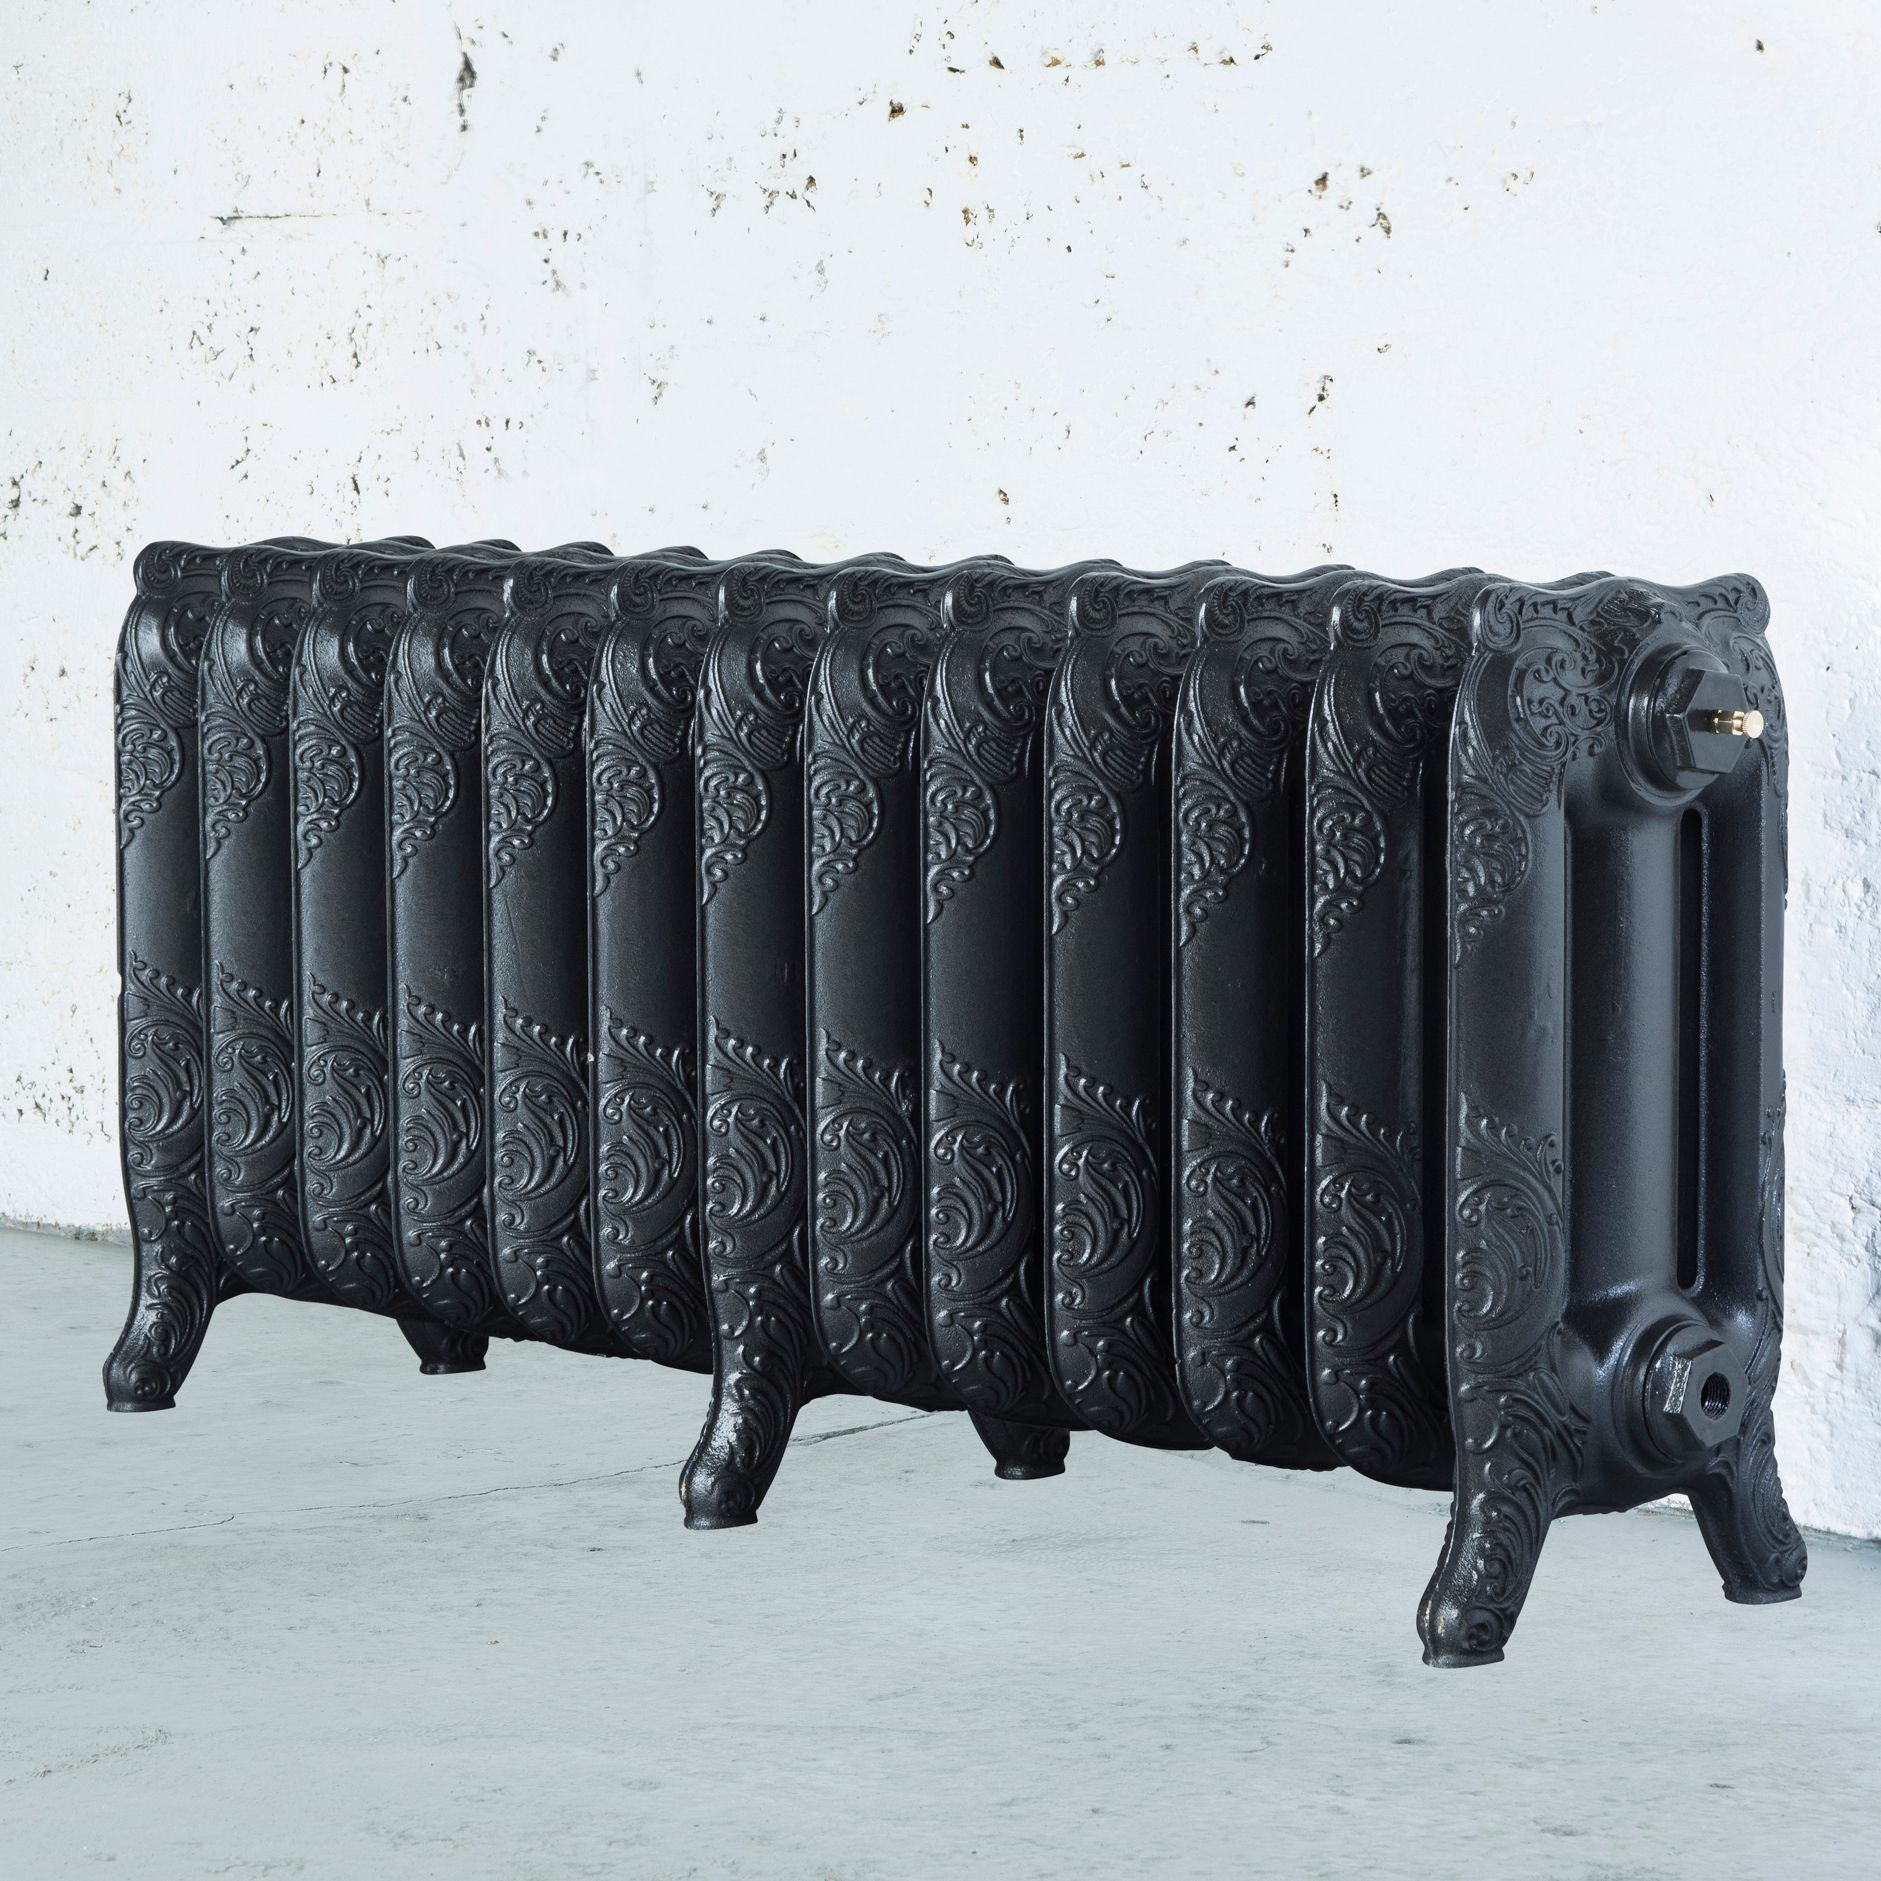 Arroll Montmartre 3 Column Radiator, Anthracite (W)1074 mm